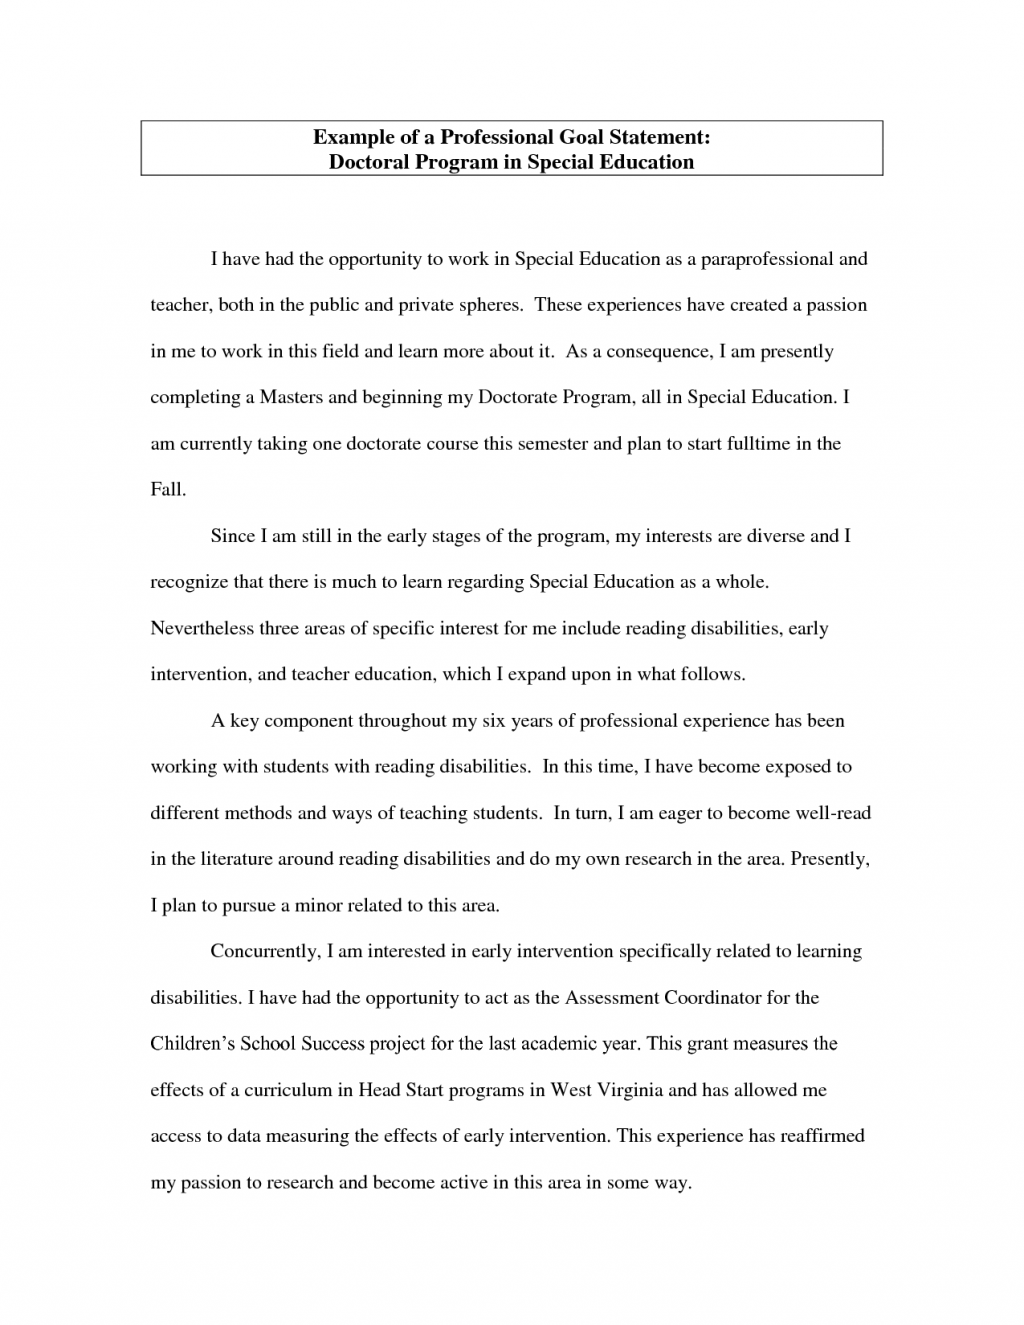 005 Career Development Research Paper Topics Essay Examples School Reports In Class Of Their Own Telegraph The Goal Statement Zdxttkpg Nursing20 Singular Full